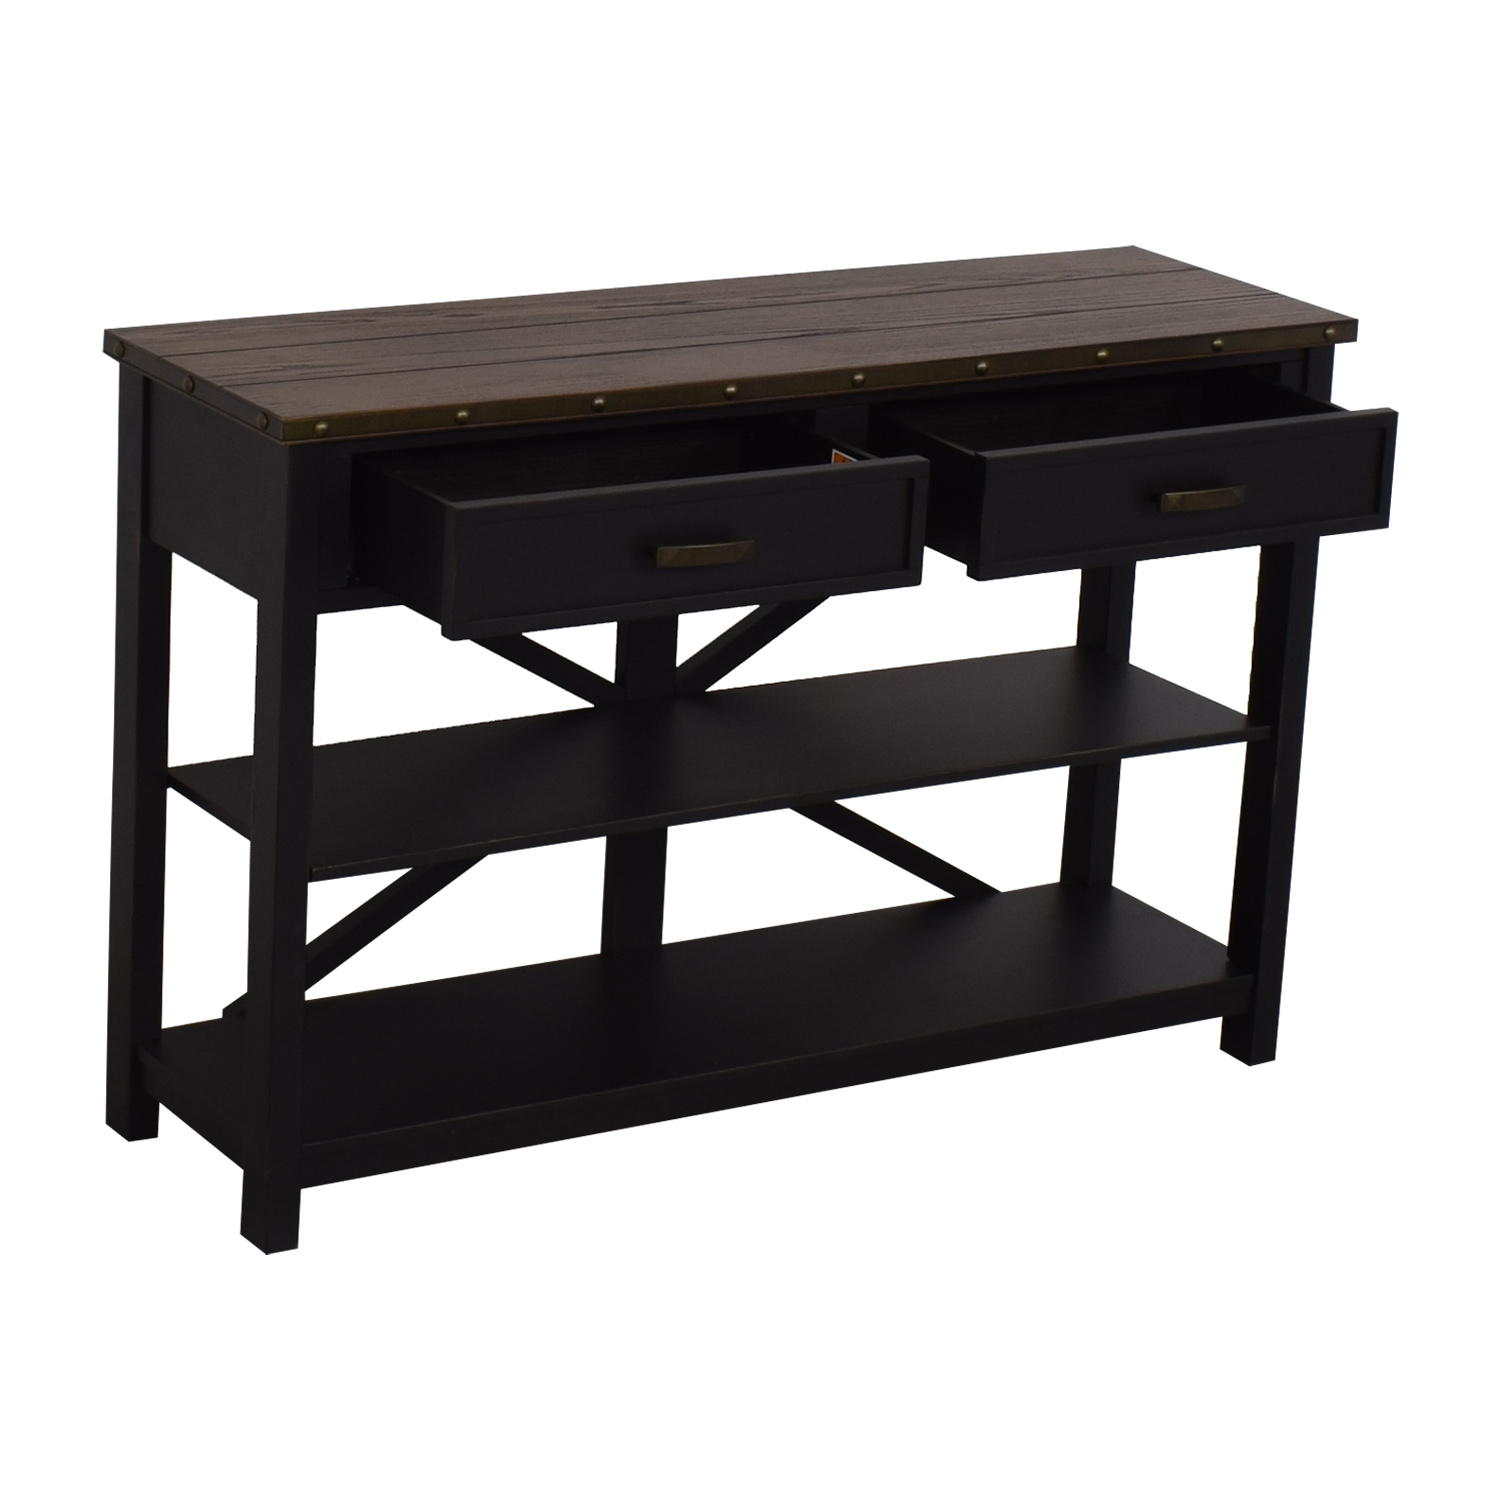 shop Raymour & Flanigan Brennan Sofa Table Raymour & Flanigan Accent Tables